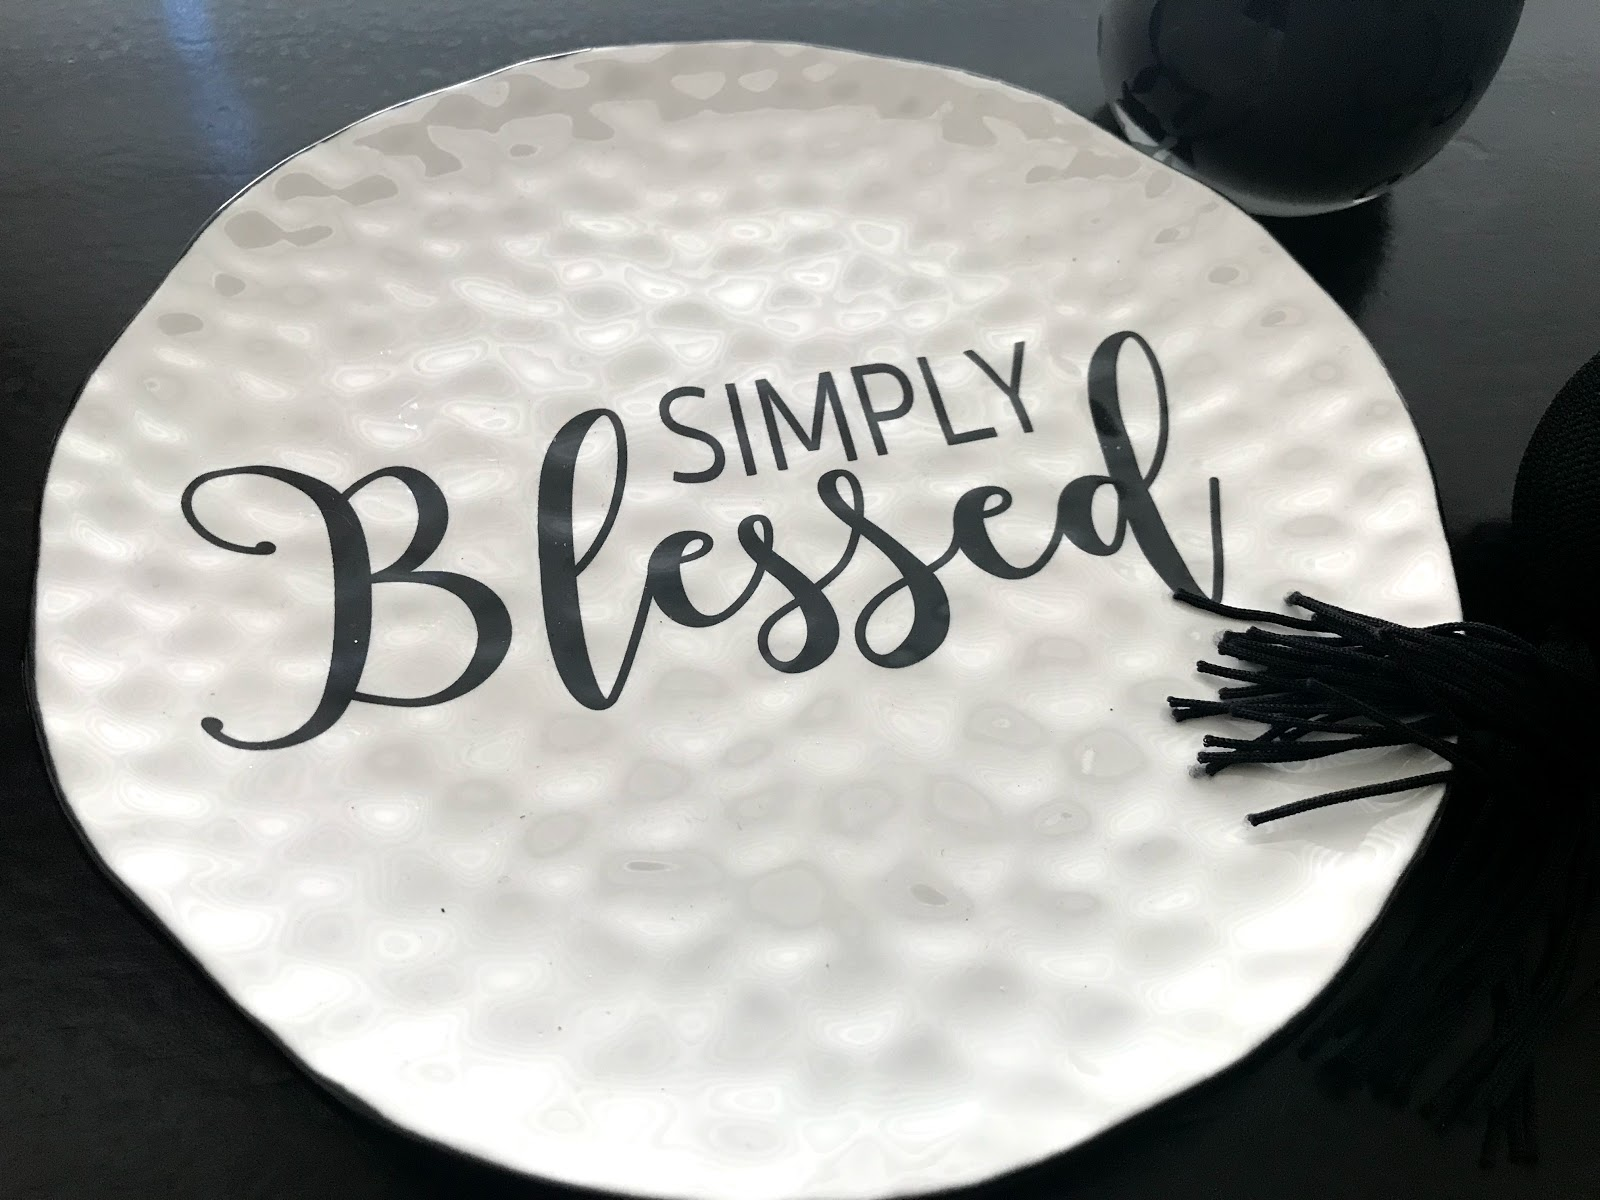 Image: Simply Blessed Plate on Table